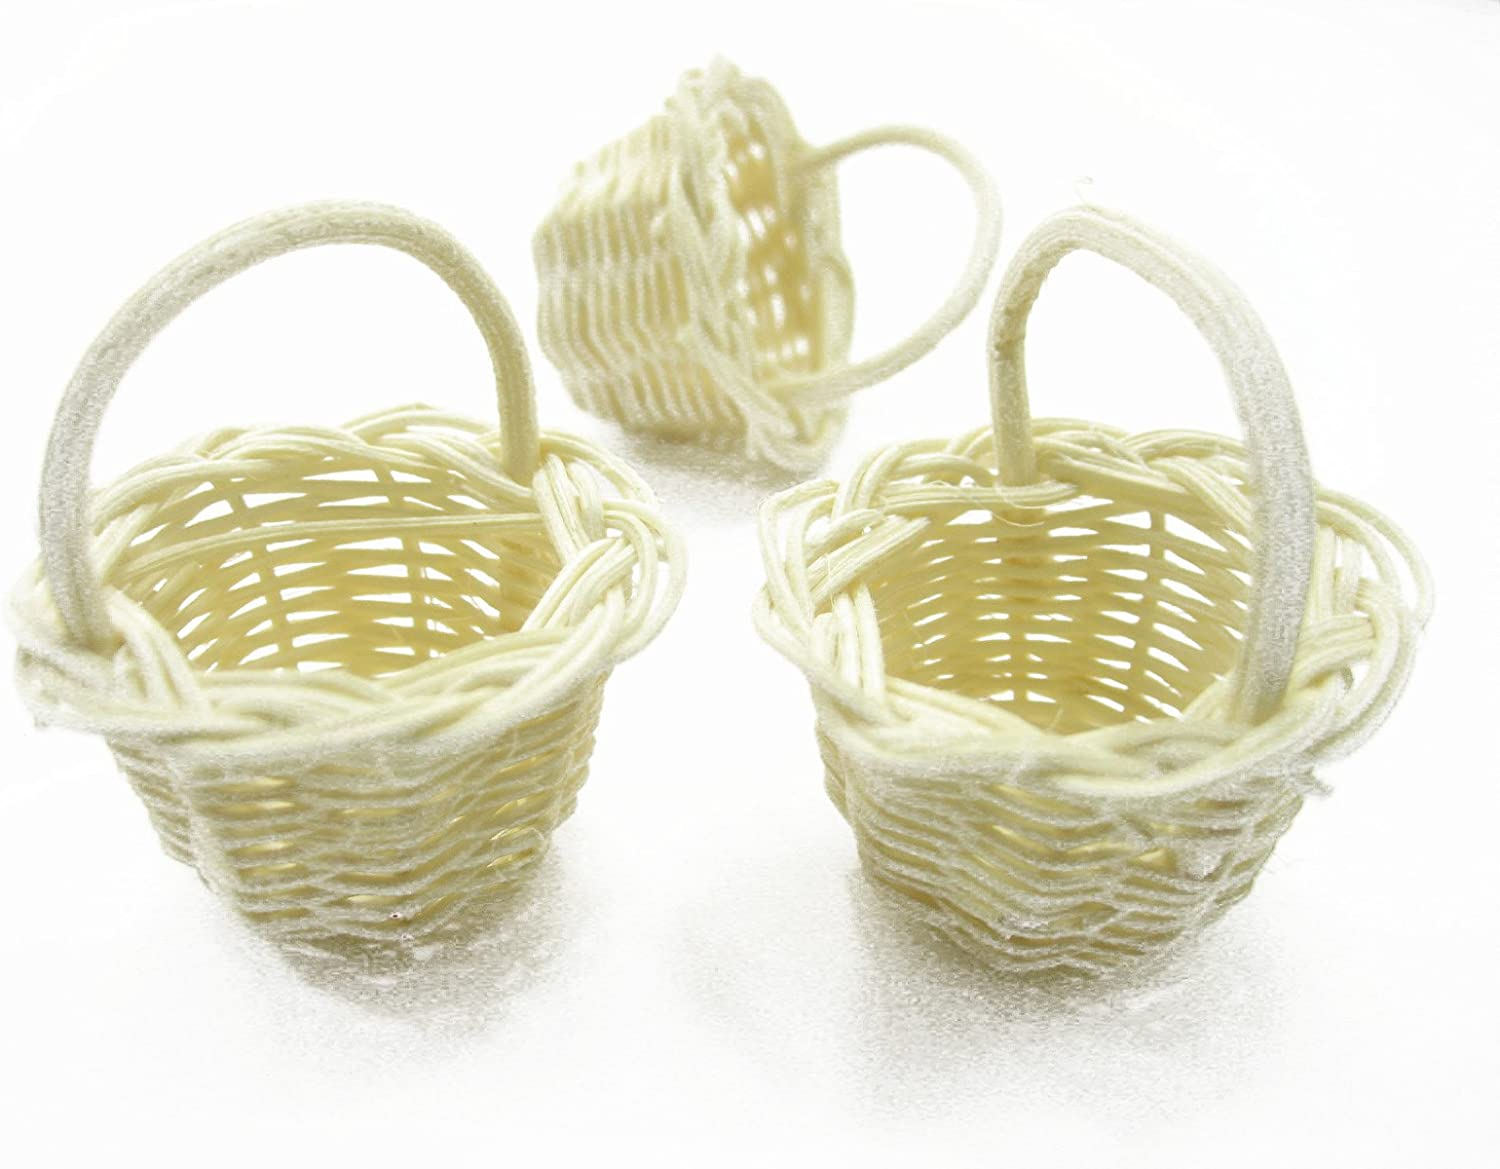 10 Small Round Handmade Wicker Baskets Dollhouse Miniatures Supply Charms 9519